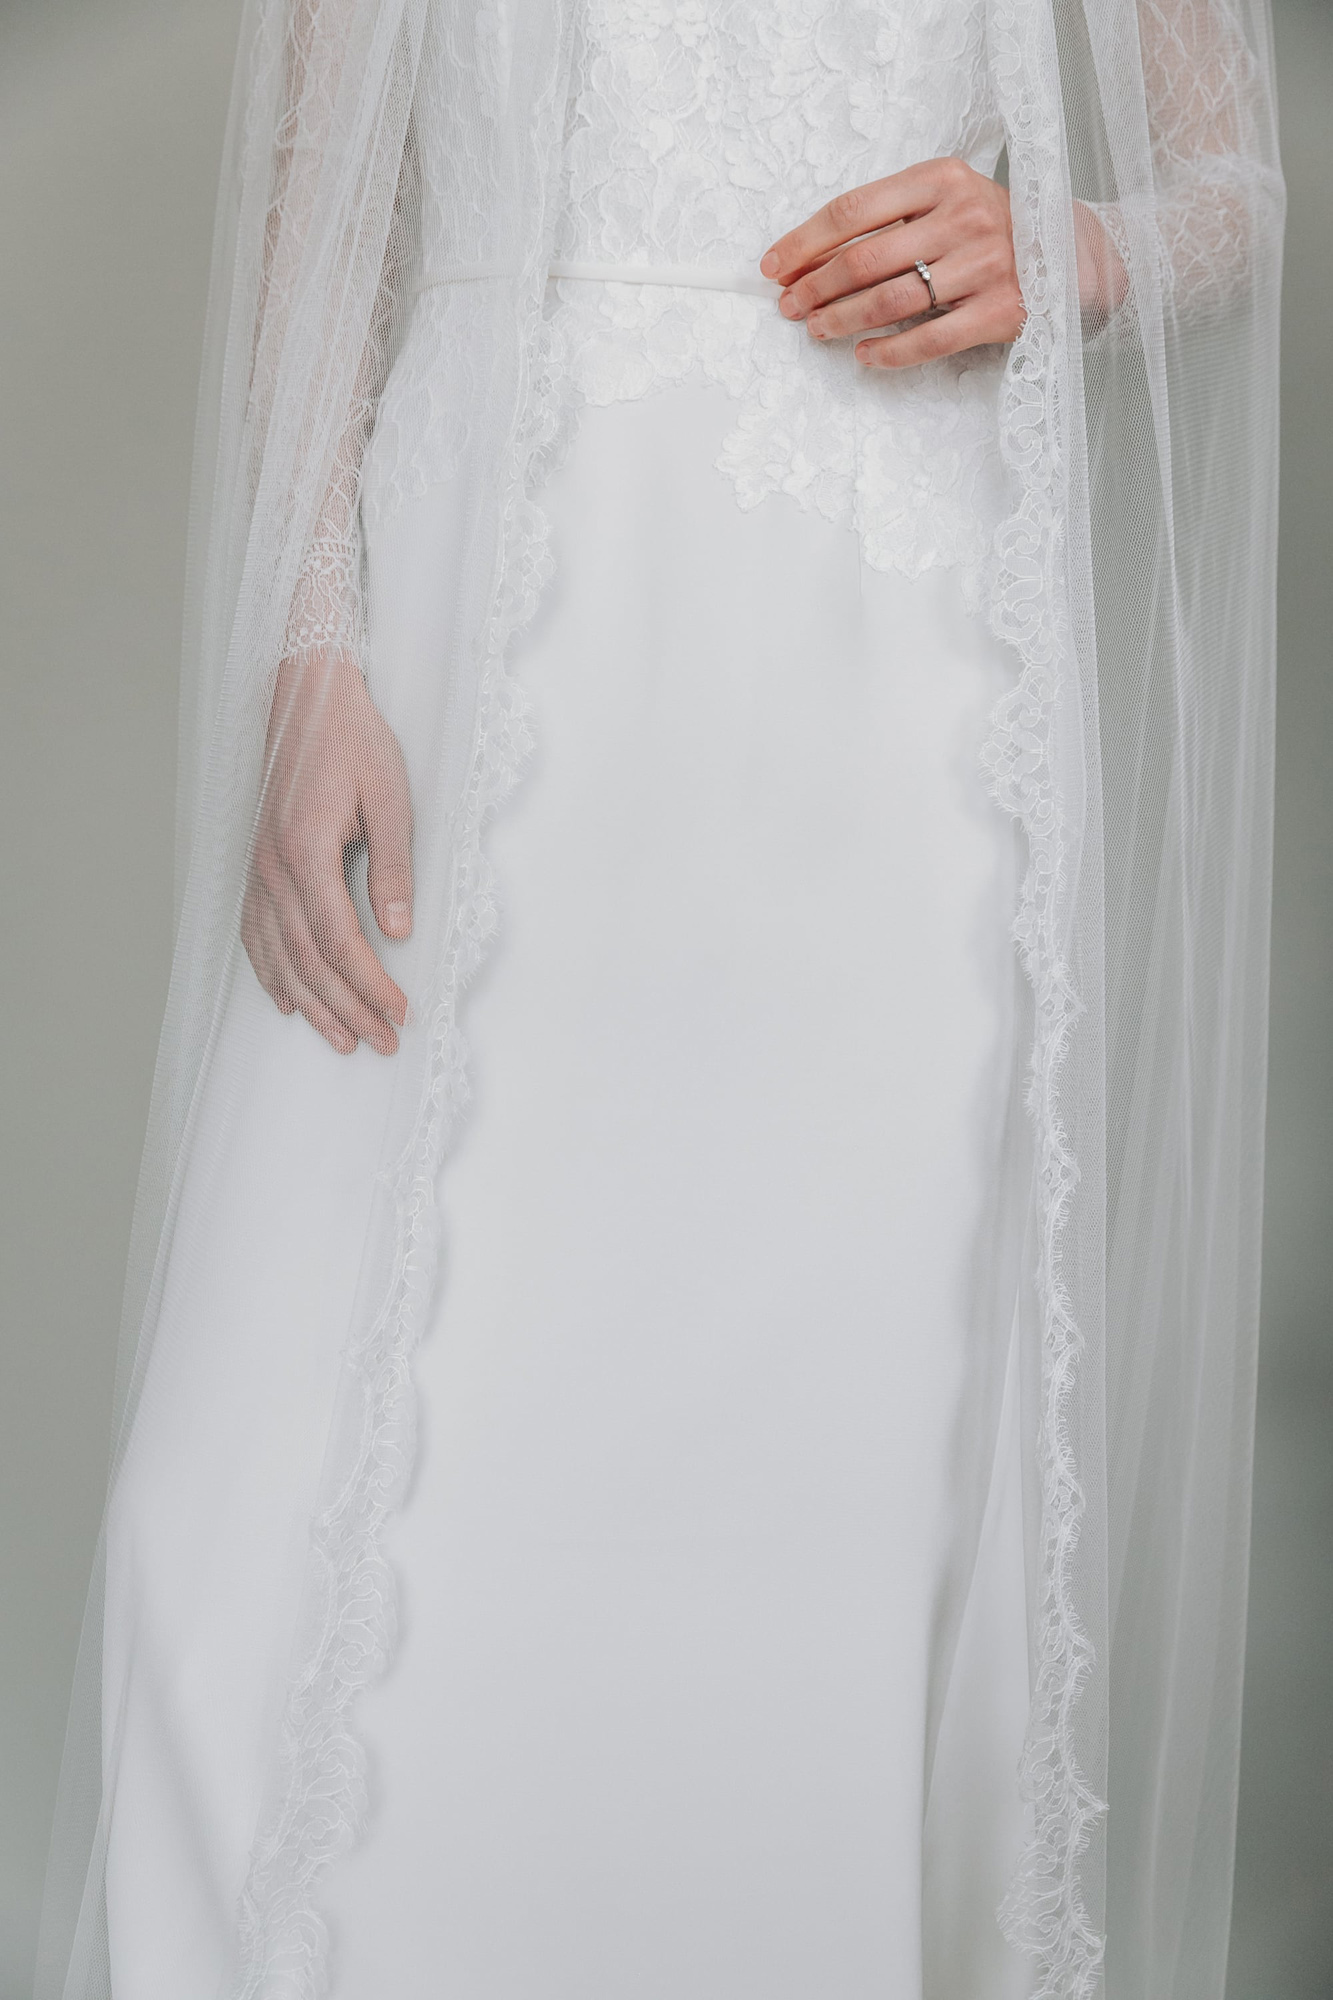 Kate-Beaumont-Sheffield-Geranium-Applique-Lace-Silk-Modern-Minimal-Long-Sleeved-Wedding-Gown-20.jpg